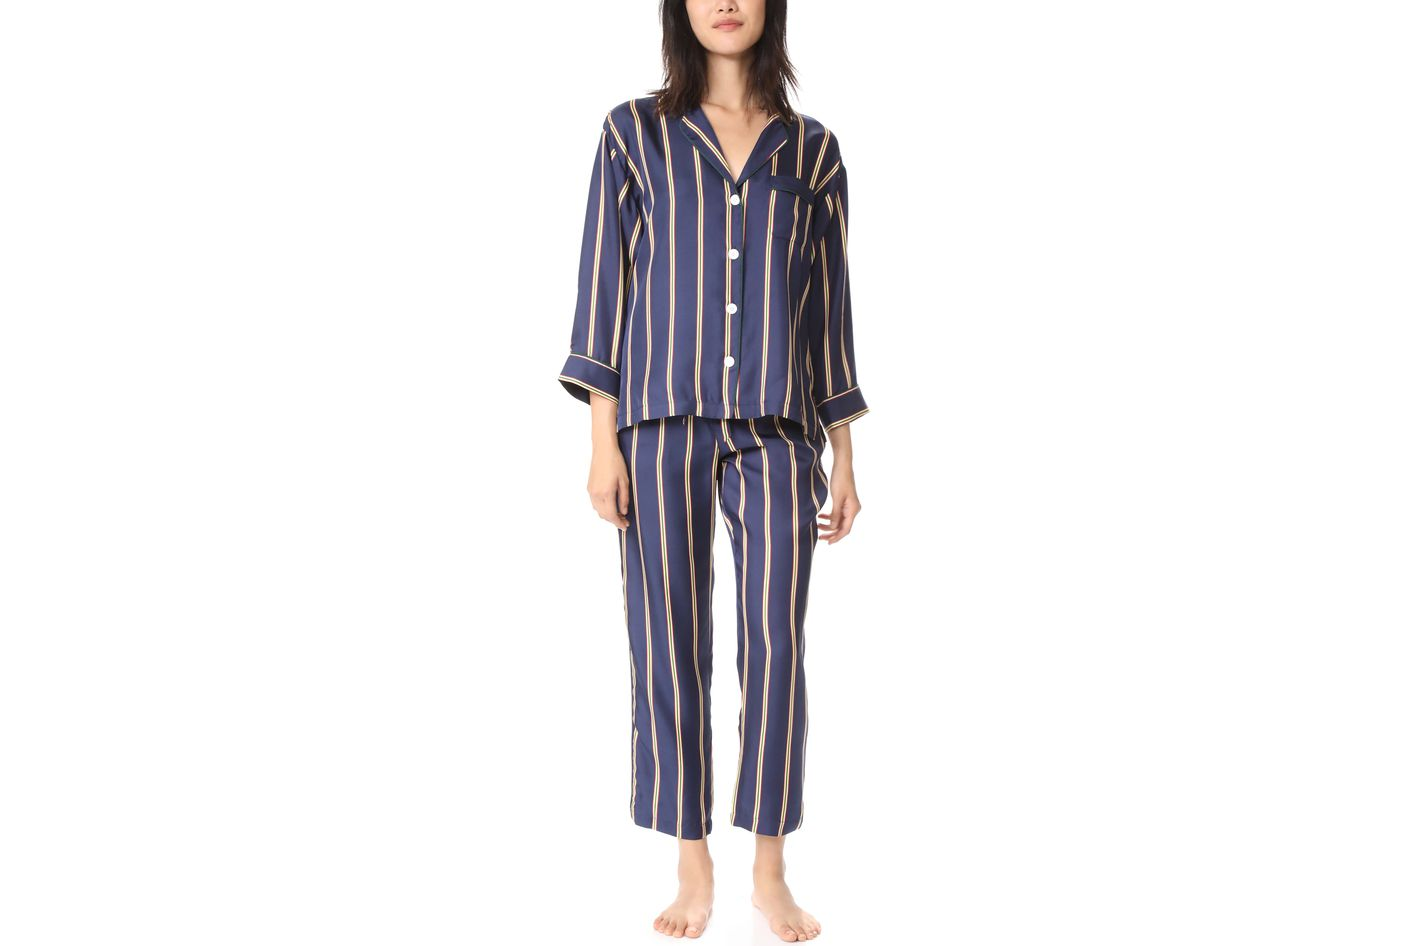 a5d4b231c4 Sleepy Jones Silk Marina Pajama Shirt